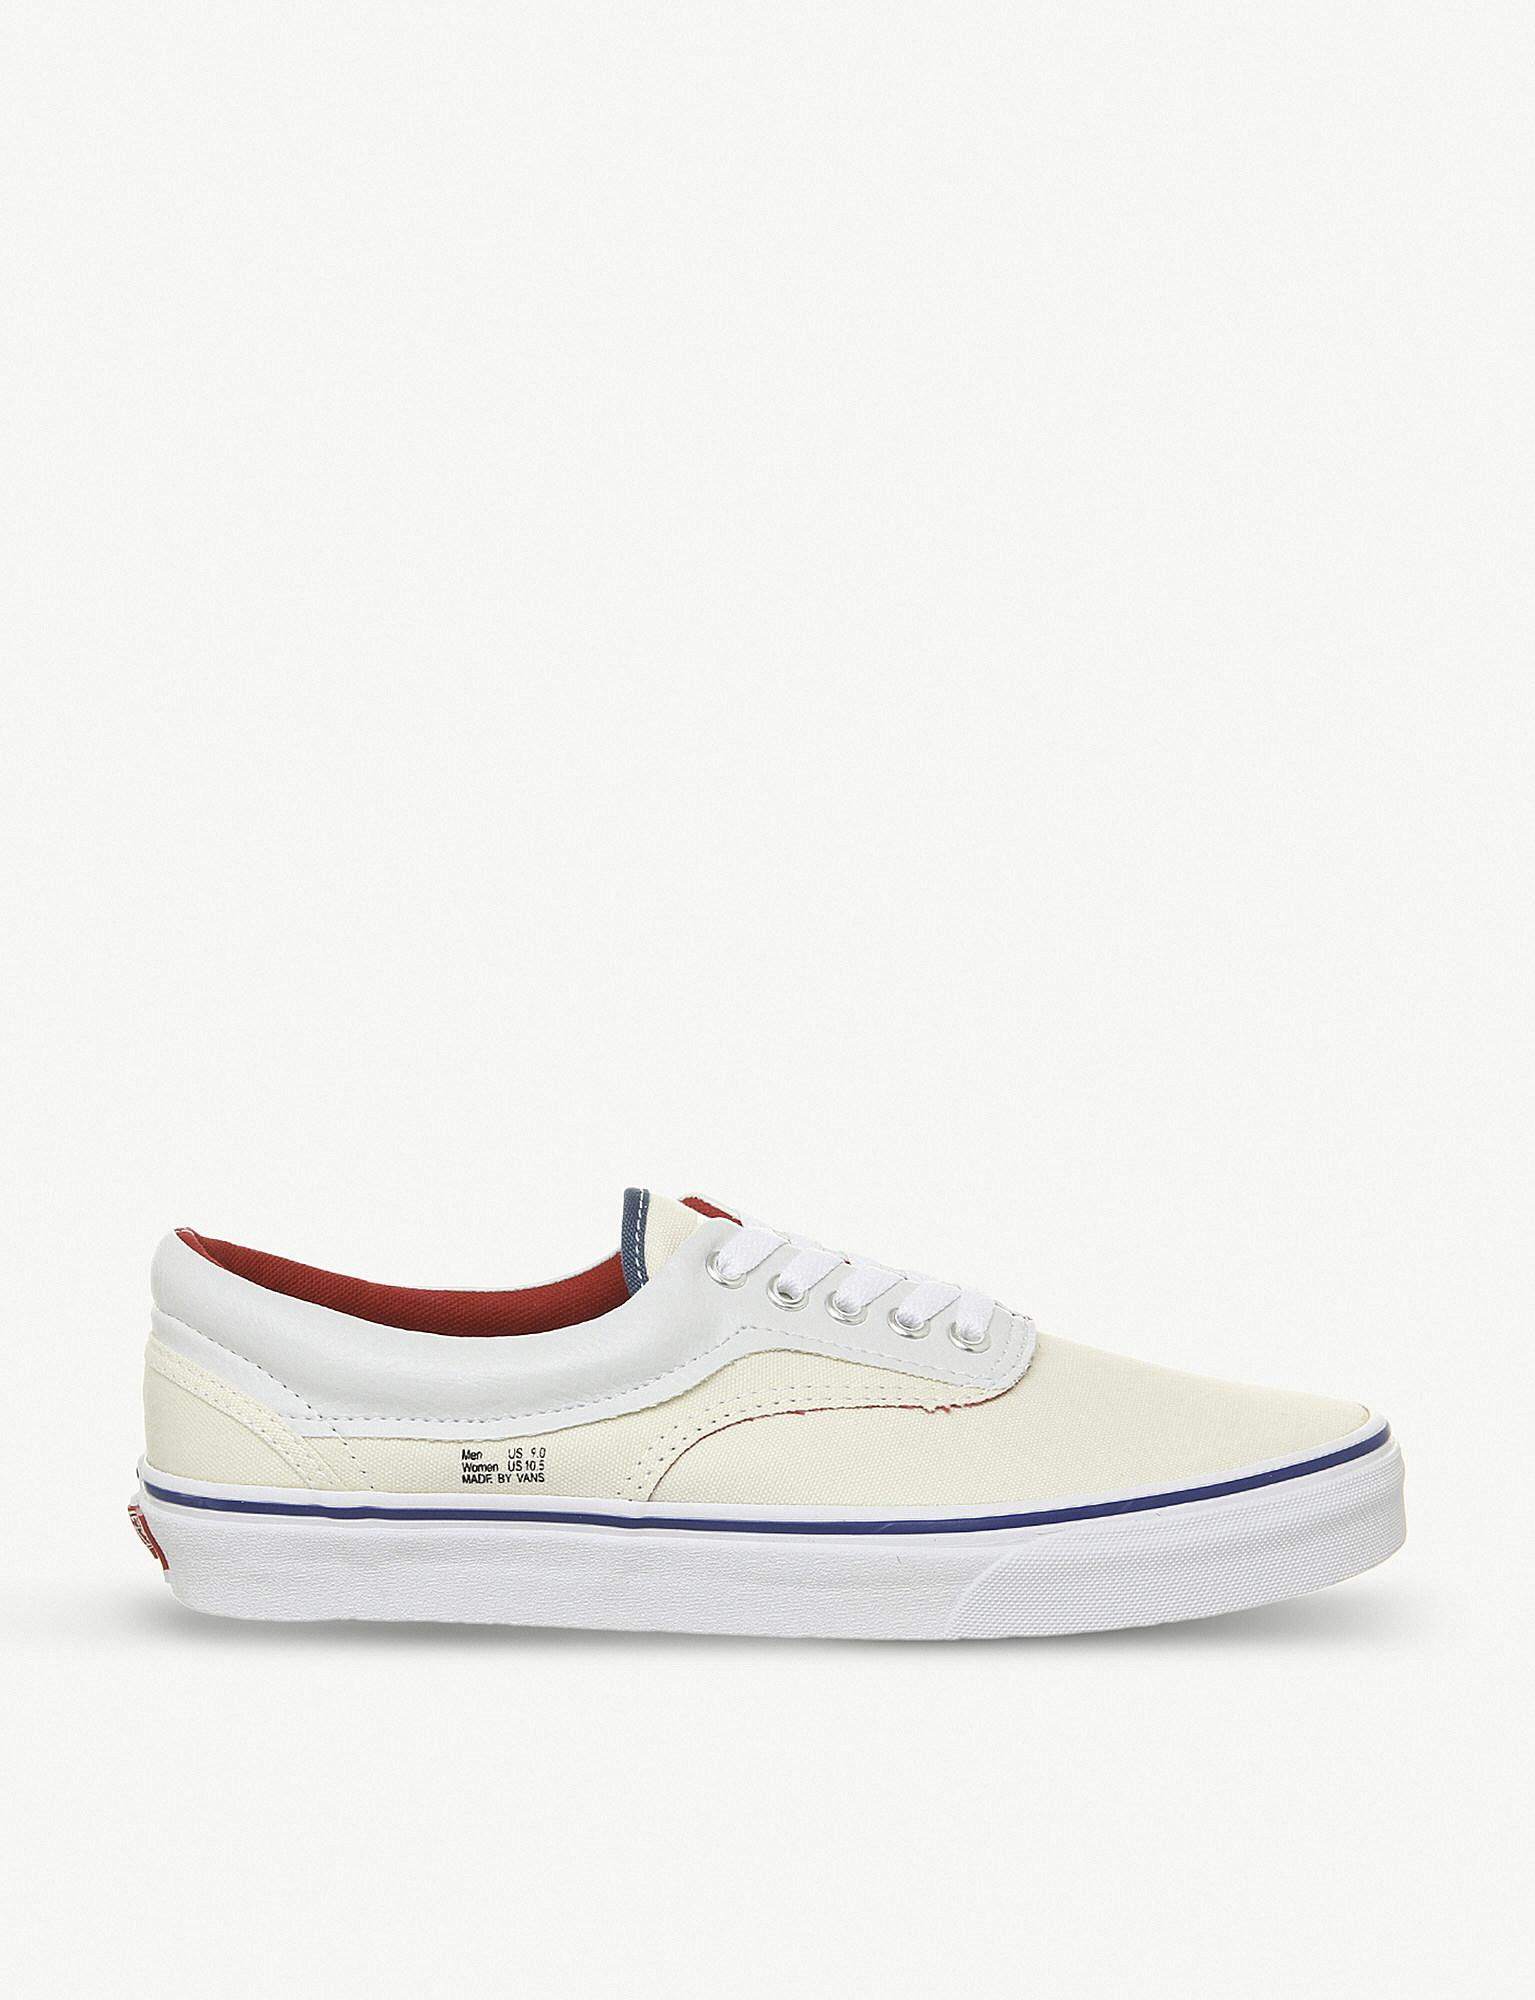 f9f53c96e69 Lyst - Vans Era Outside In Canvas Trainers in White for Men - Save 17%